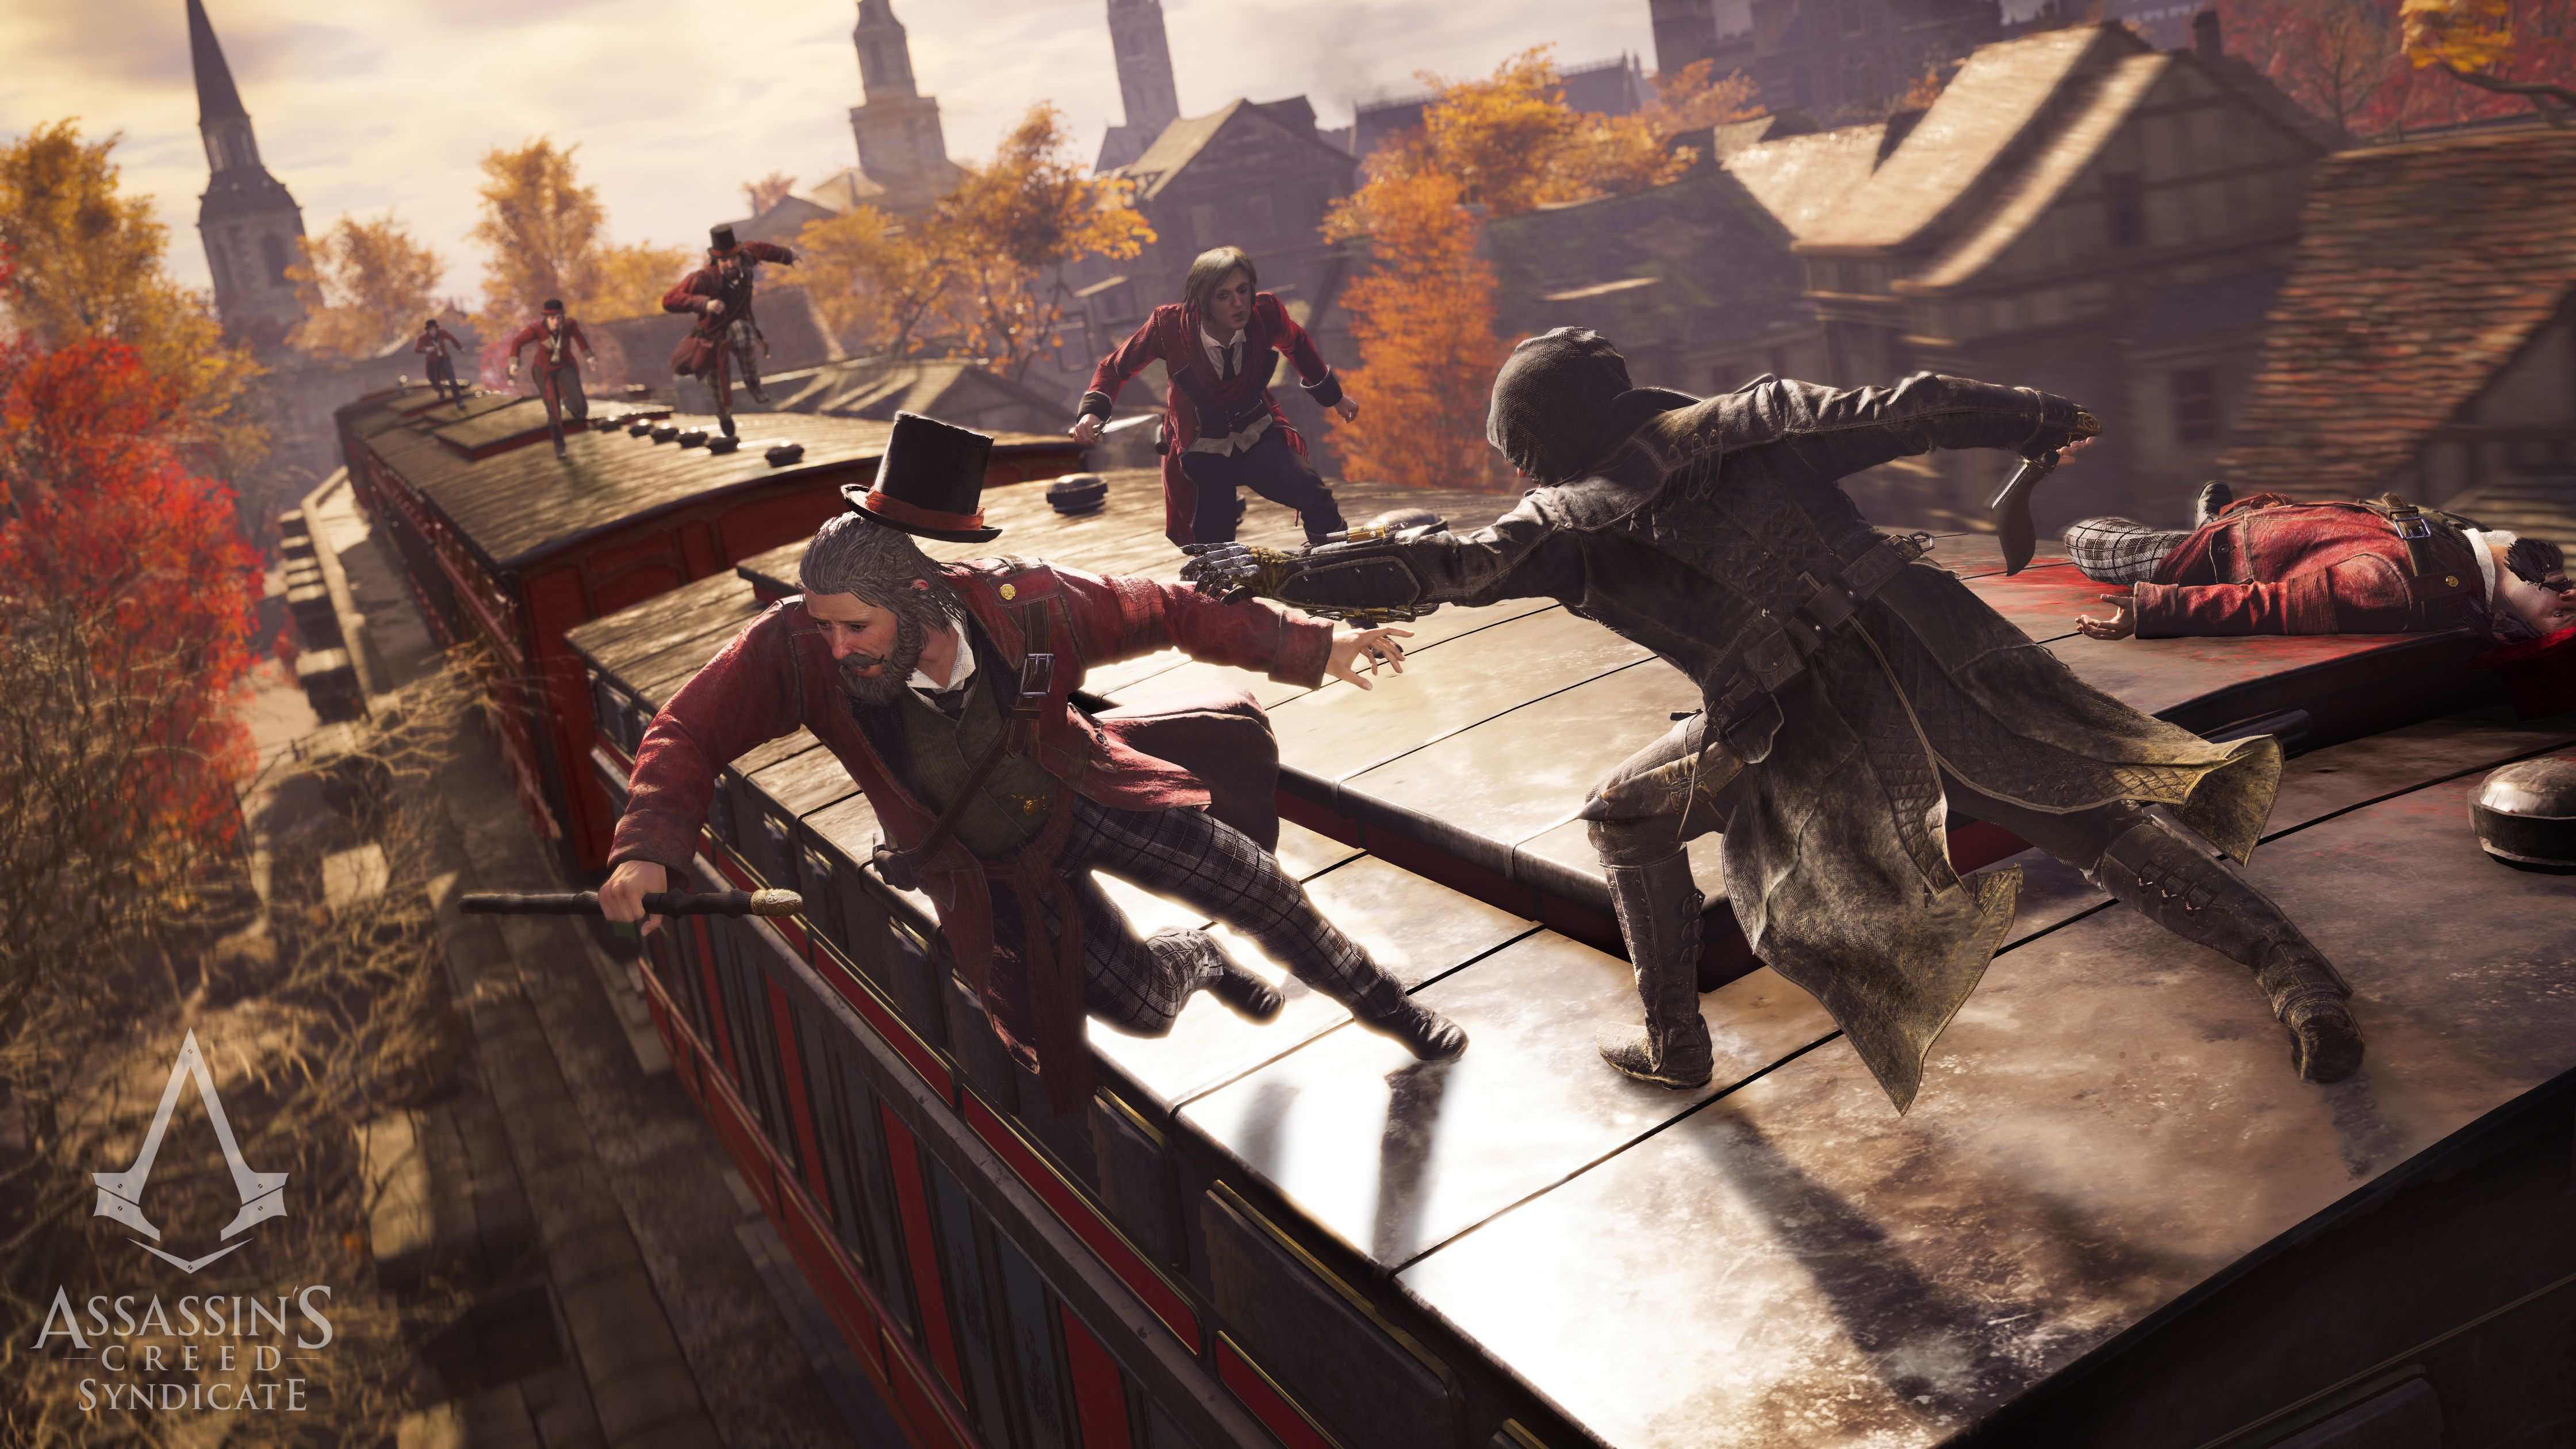 Nový trailer a gameplay z Assassin's Creed: Syndicate 110229